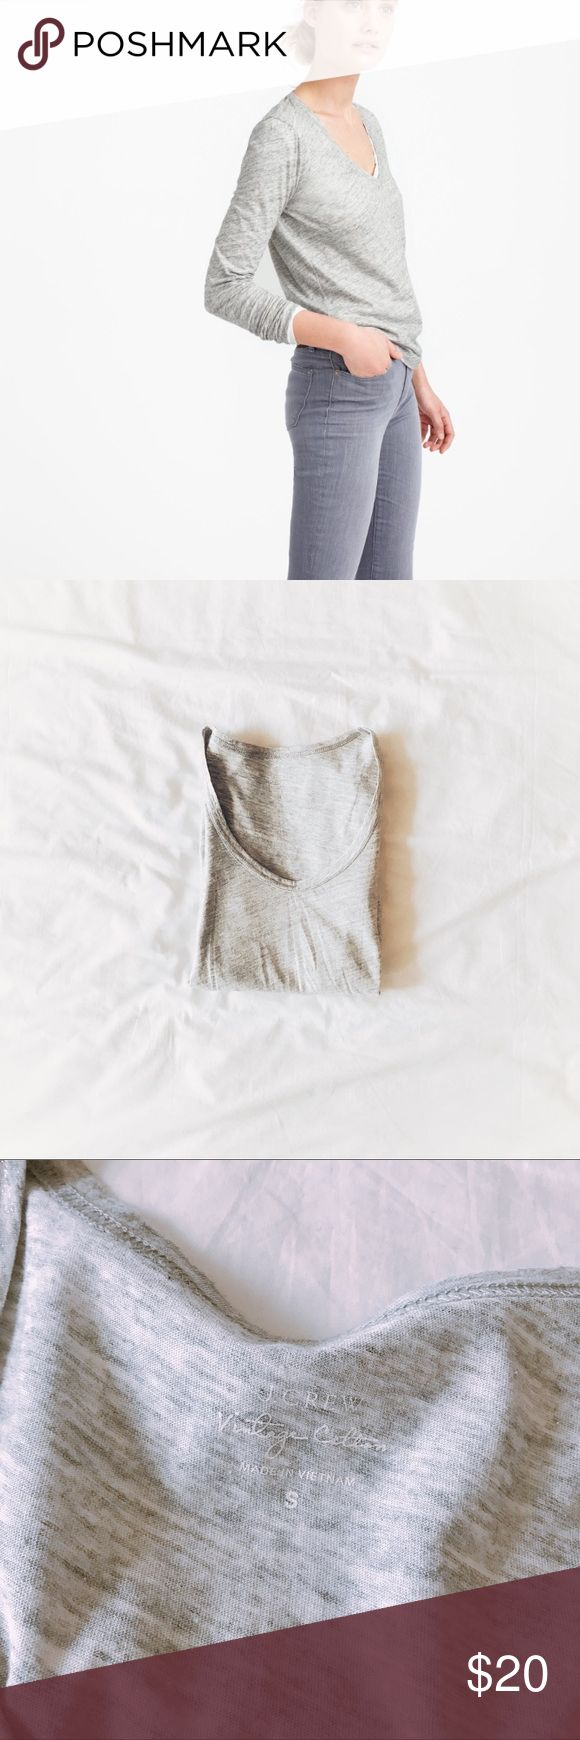 """Metallic Tee +measurements 24"""" length, 15"""" chest (armpit to armpit)  +product info J Crew vintage cotton scoop neck tee in heather grey metallic. Long sleeves.   +composition 100% cotton   +condition Worn once, freshly cleaned. No stains or holes. J. Crew Tops Tees - Long Sleeve"""